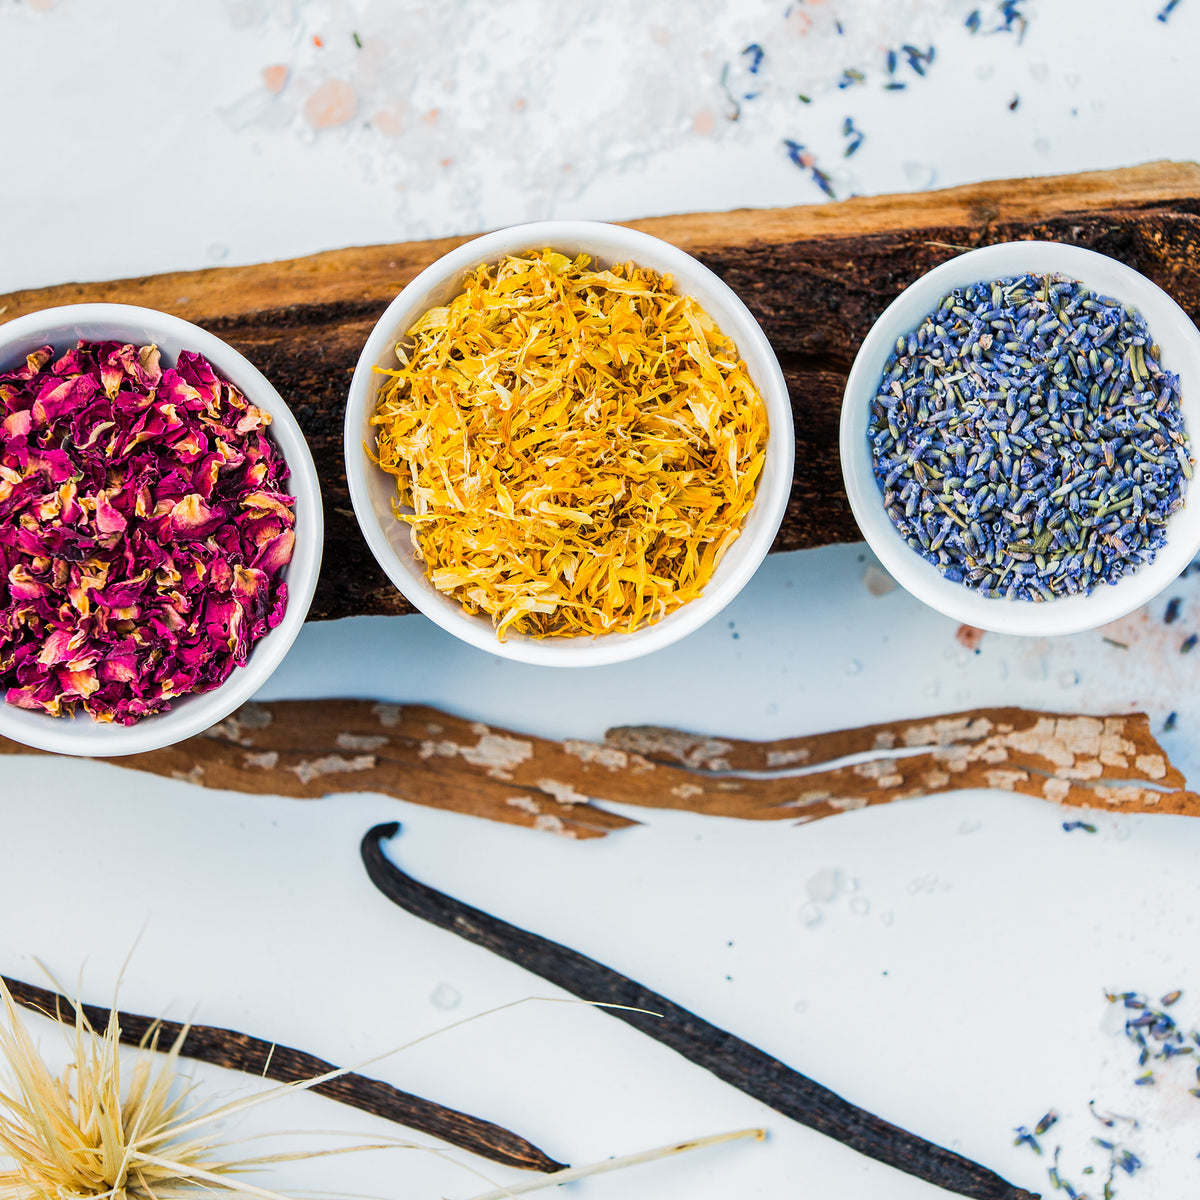 Soul & Ark Detox Bath Salts ingredients